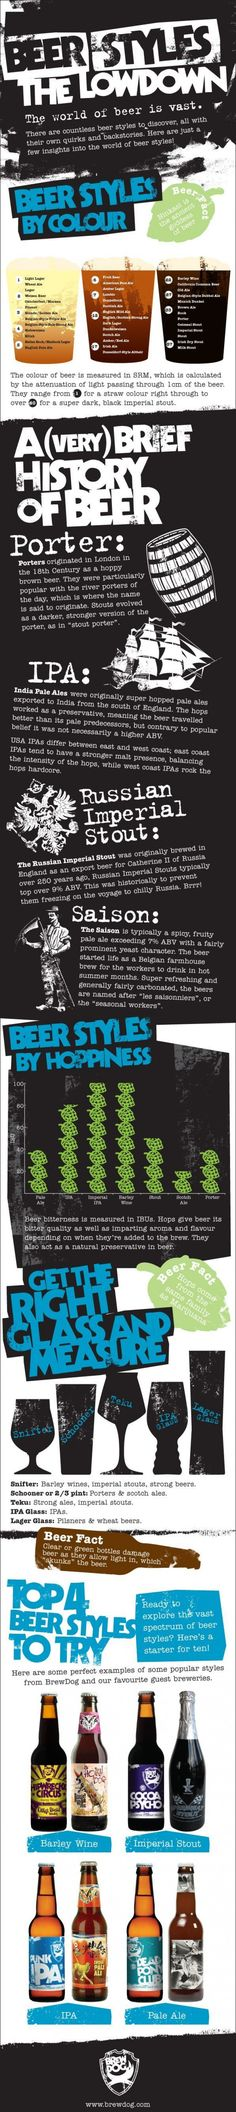 styles and history of beer